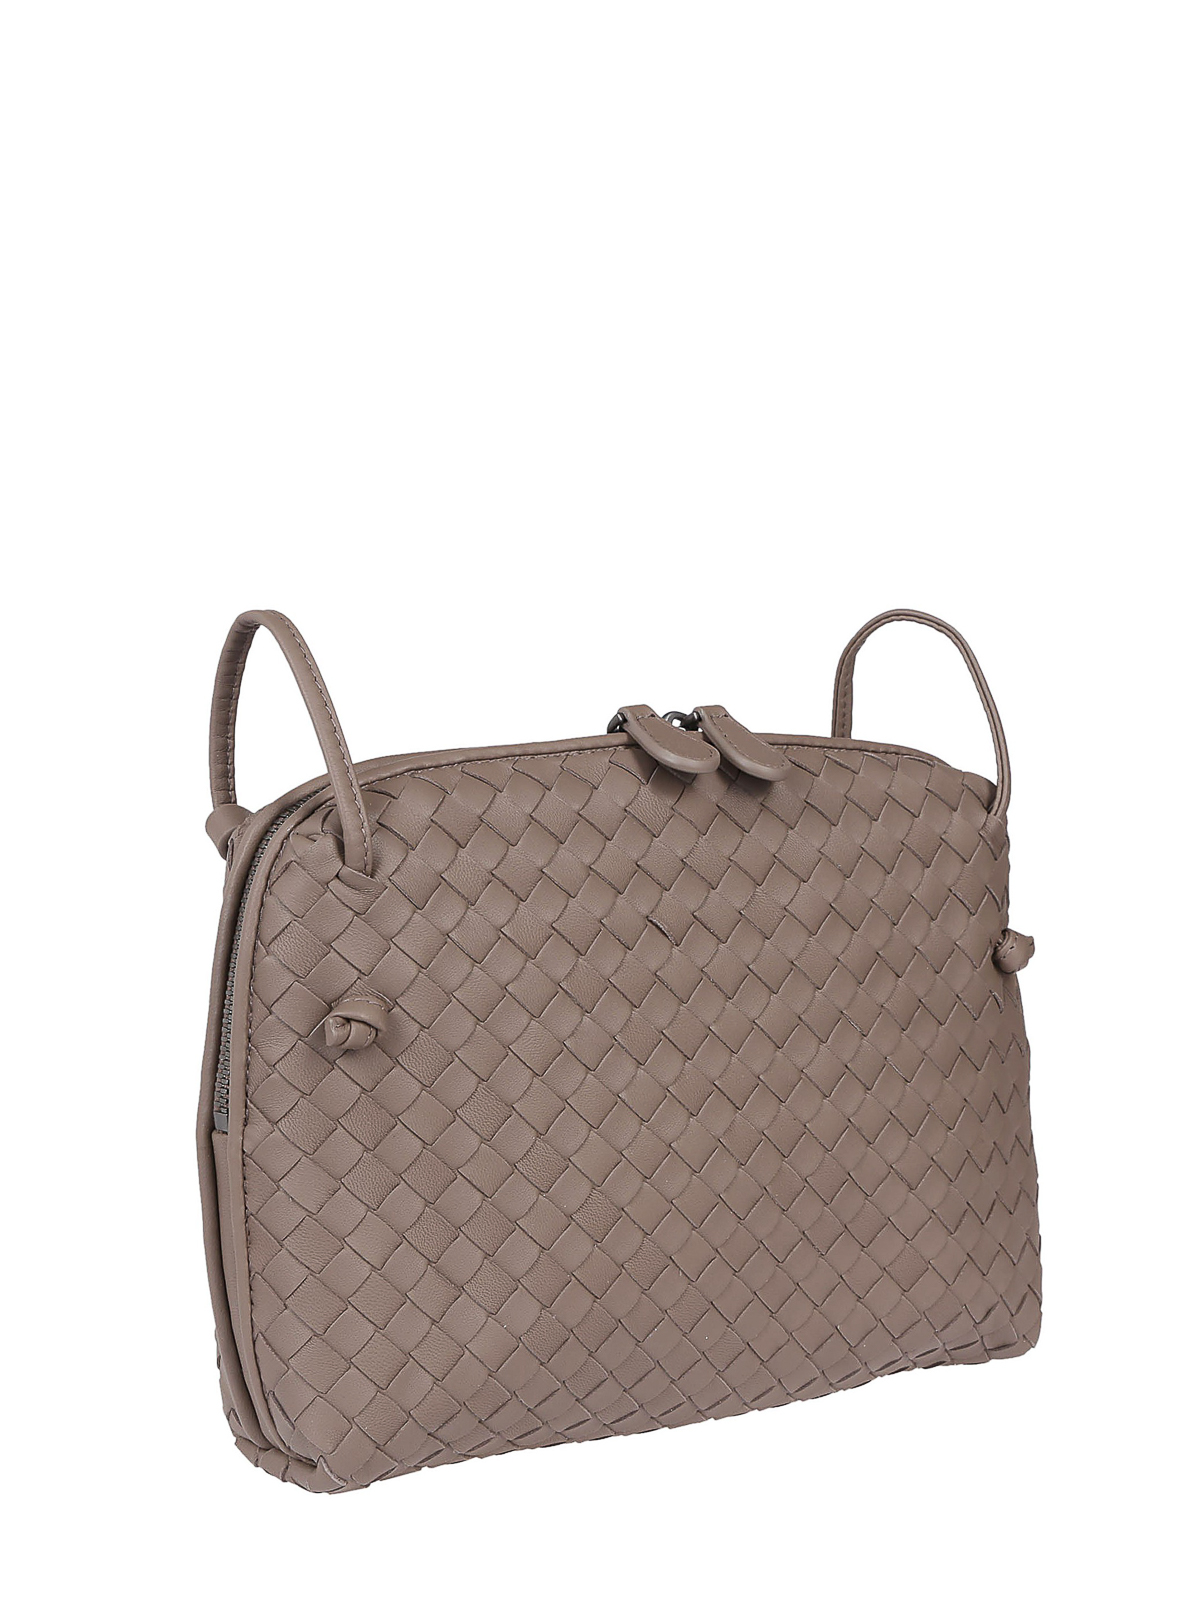 f60f36457a50e BOTTEGA VENETA  cross body bags online - Nodini intrecciato nappa cross  body bag